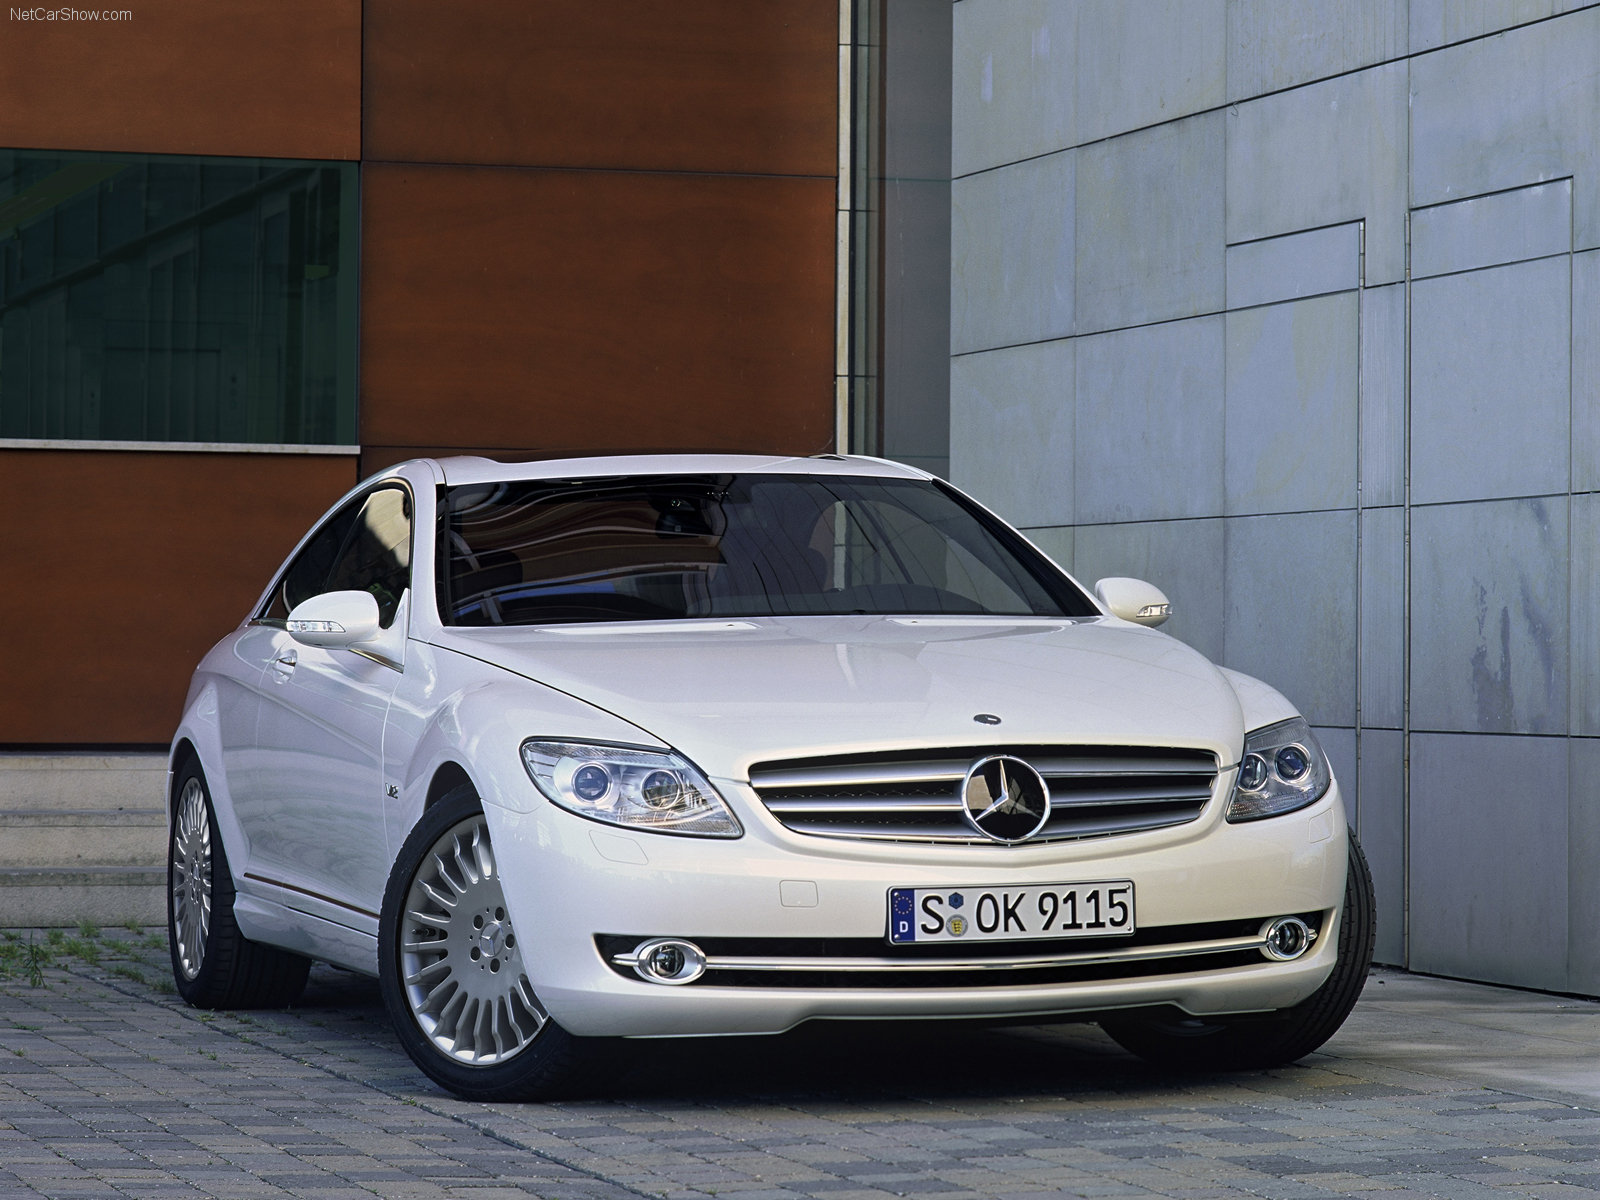 You can vote for this Mercedes-Benz CL-Class W216 photo